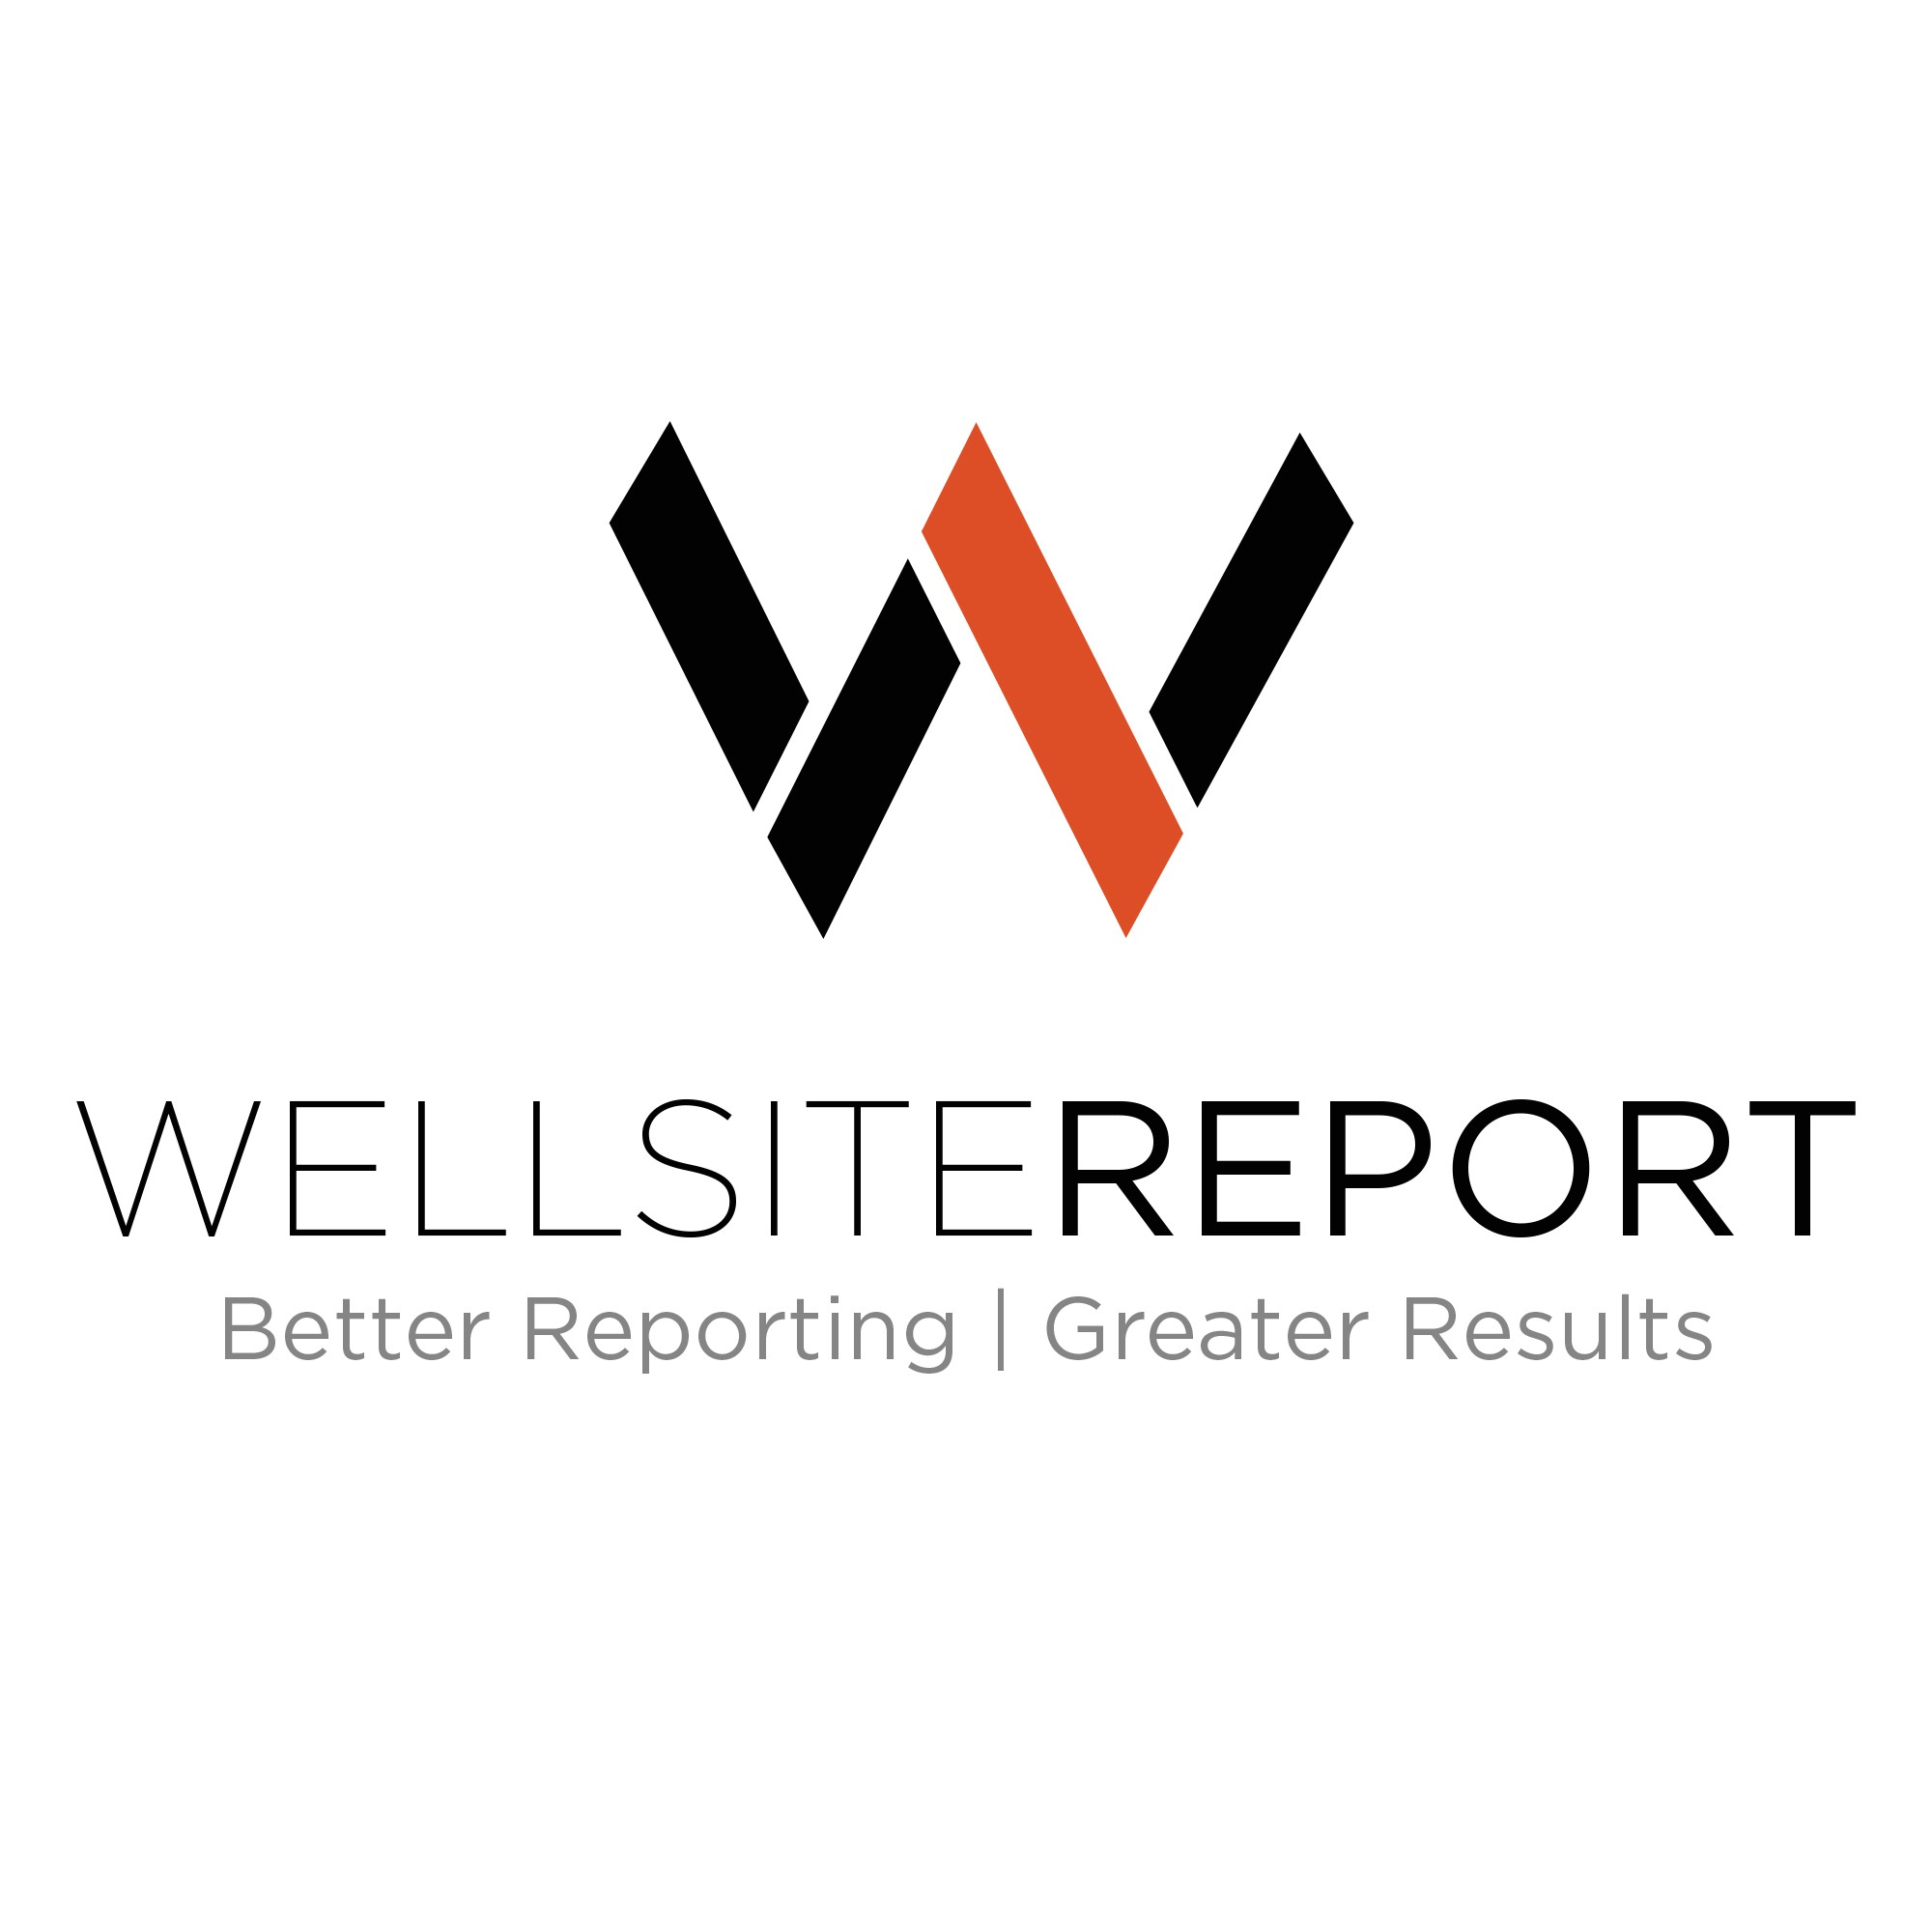 Create an oil & gas tech logo for Wellsite Report, an industry-changing company